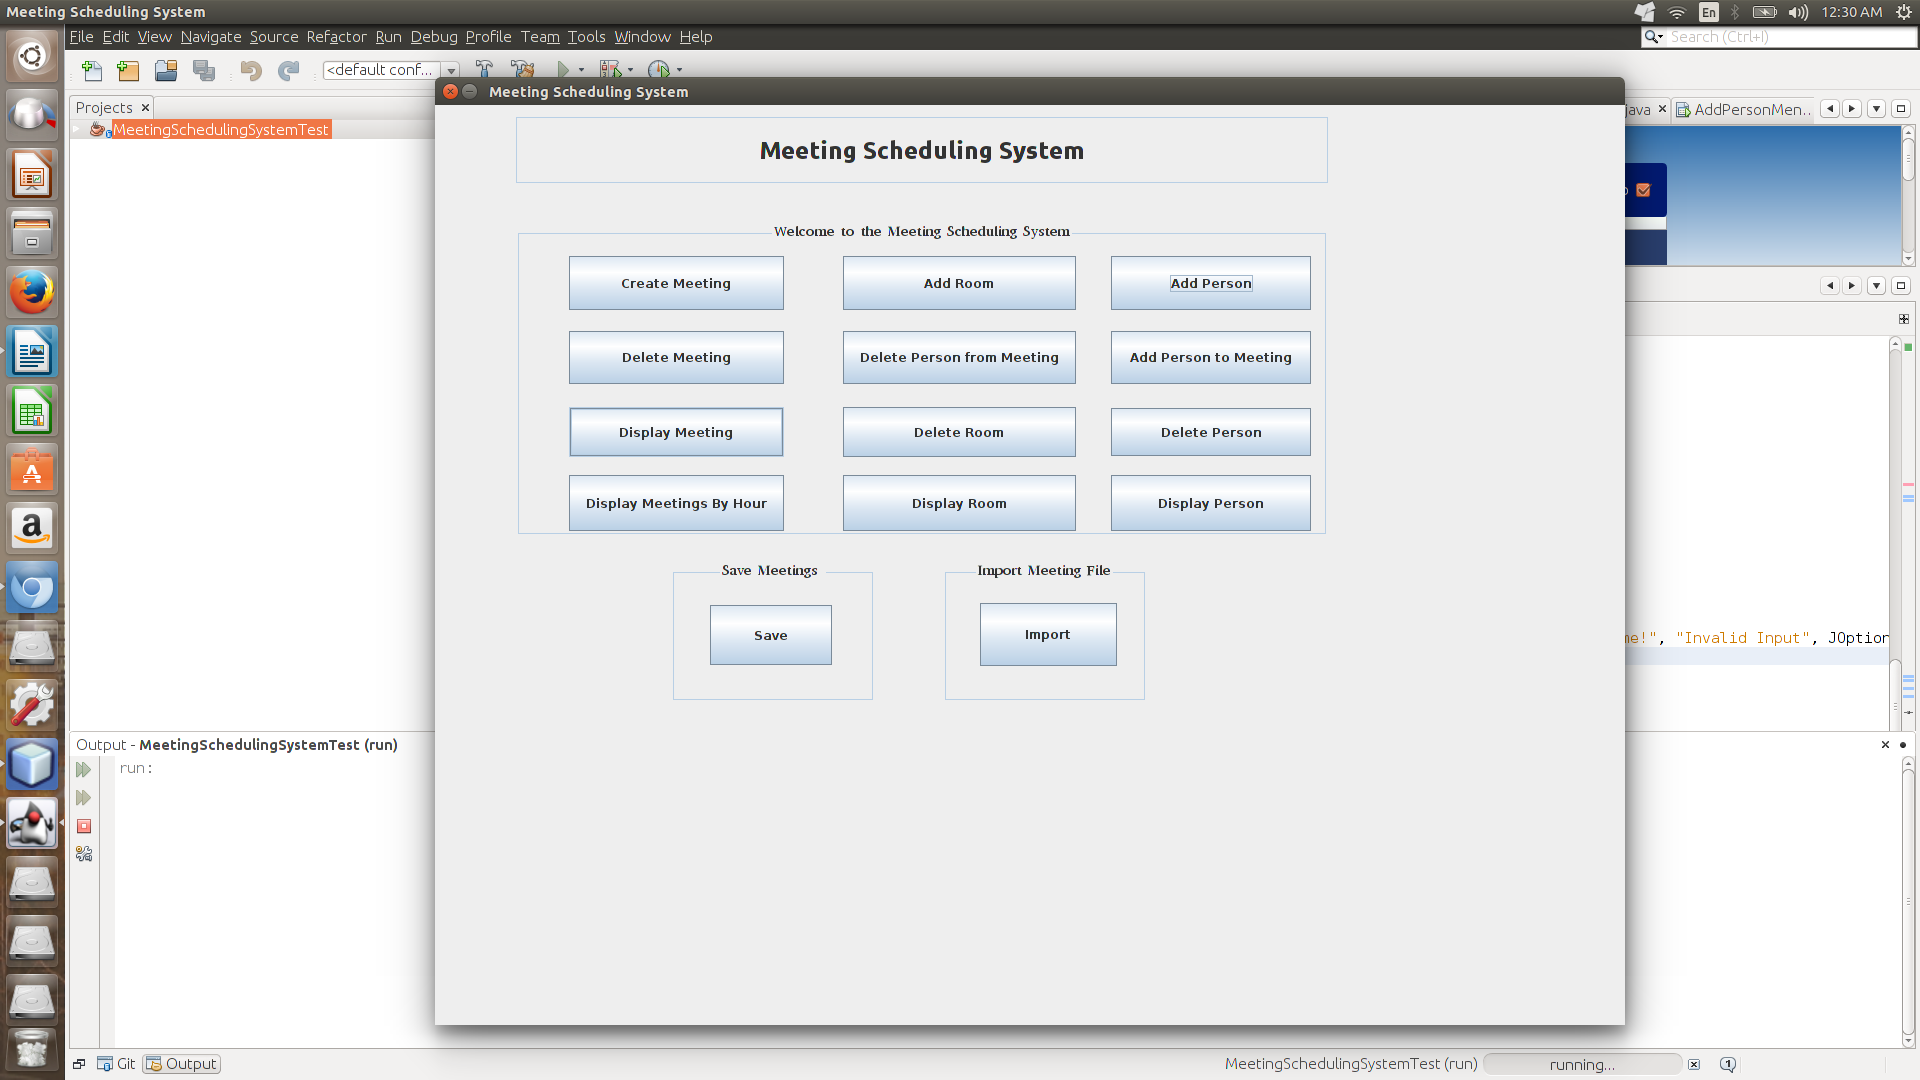 Picture of Meeting Scheduling System Application